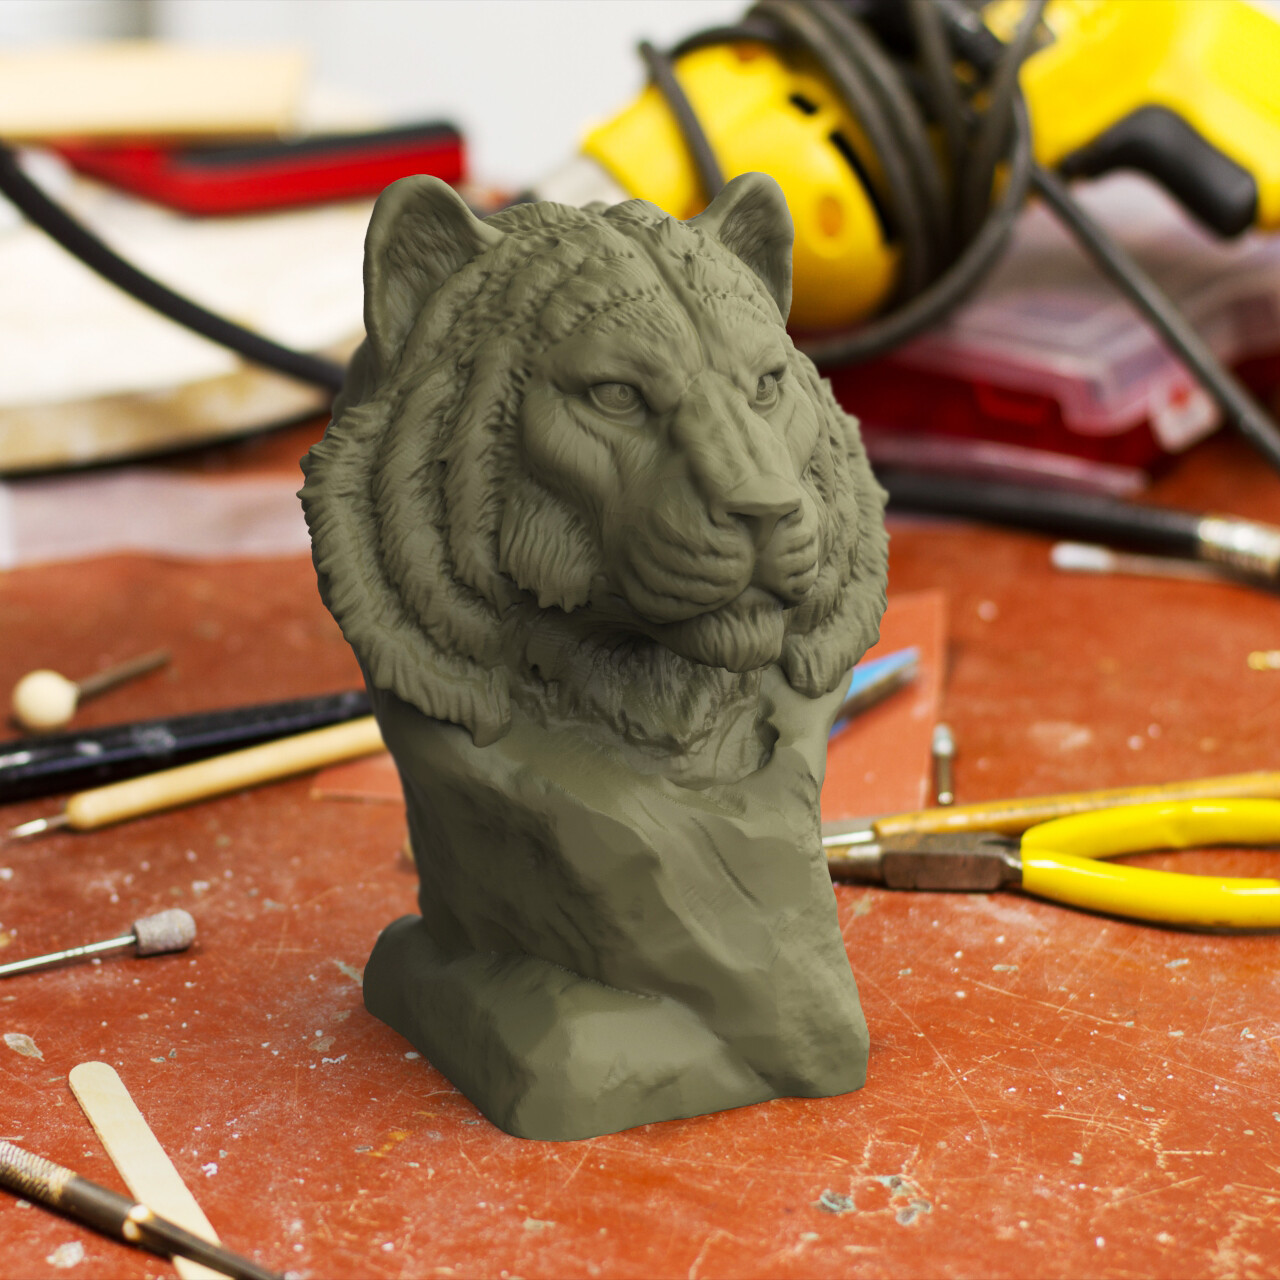 photograph about Printable Tiger Pictures identified as ArtStation - 3d Printable Tiger Sculpture, Sebastiano Di Grazia